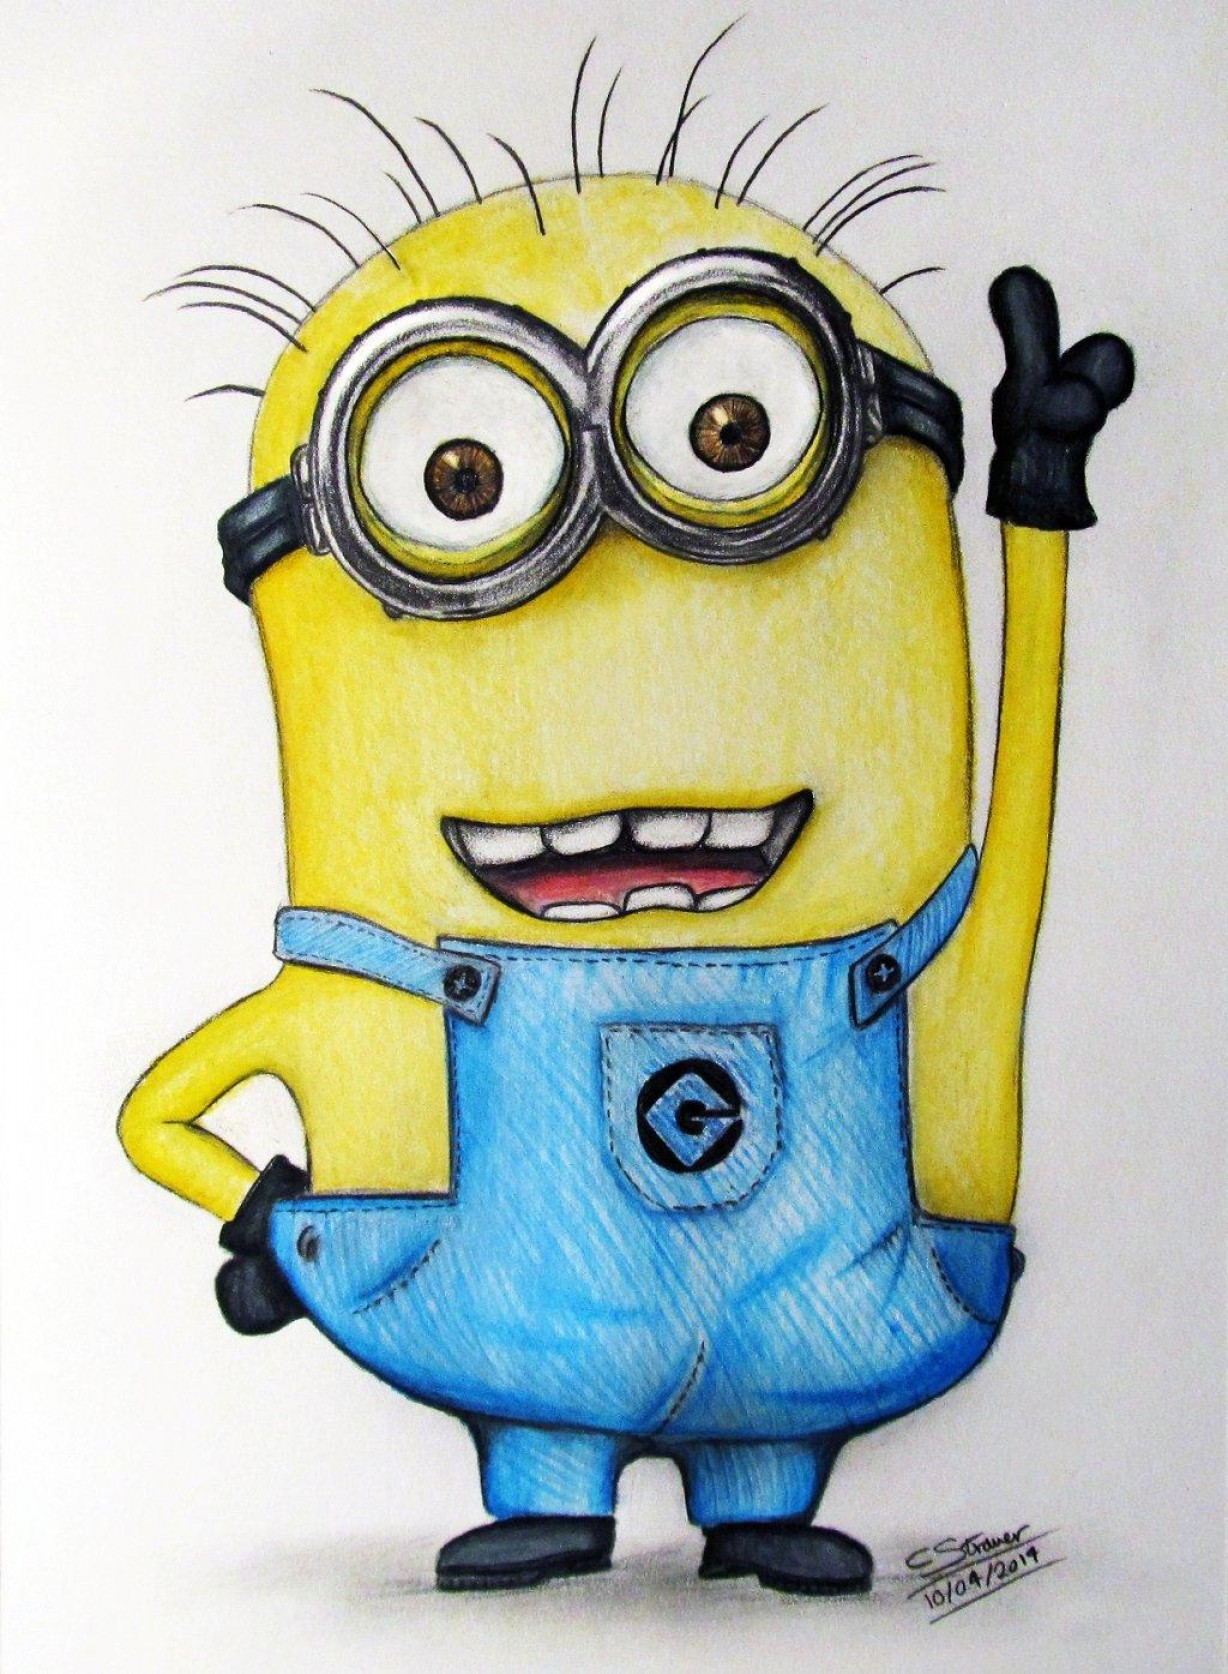 Animated Despicable Me Vector: Top Minion Fan Art Drawing Despicable Me By Lethalchris Design